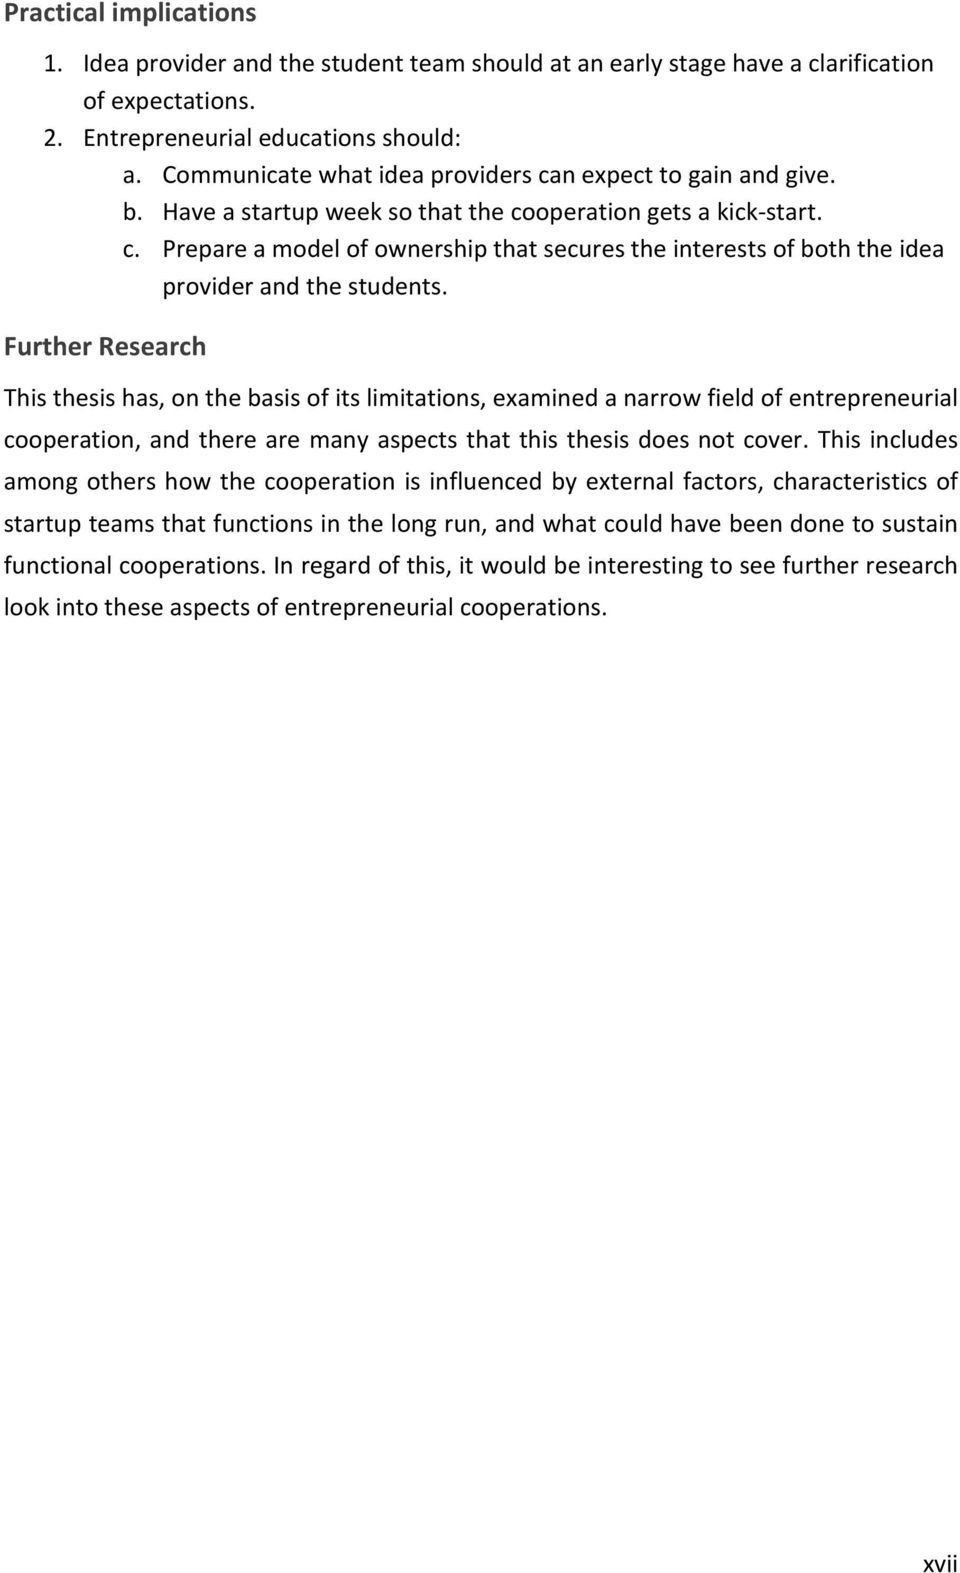 Further Research This thesis has, on the basis of its limitations, examined a narrow field of entrepreneurial cooperation, and there are many aspects that this thesis does not cover.